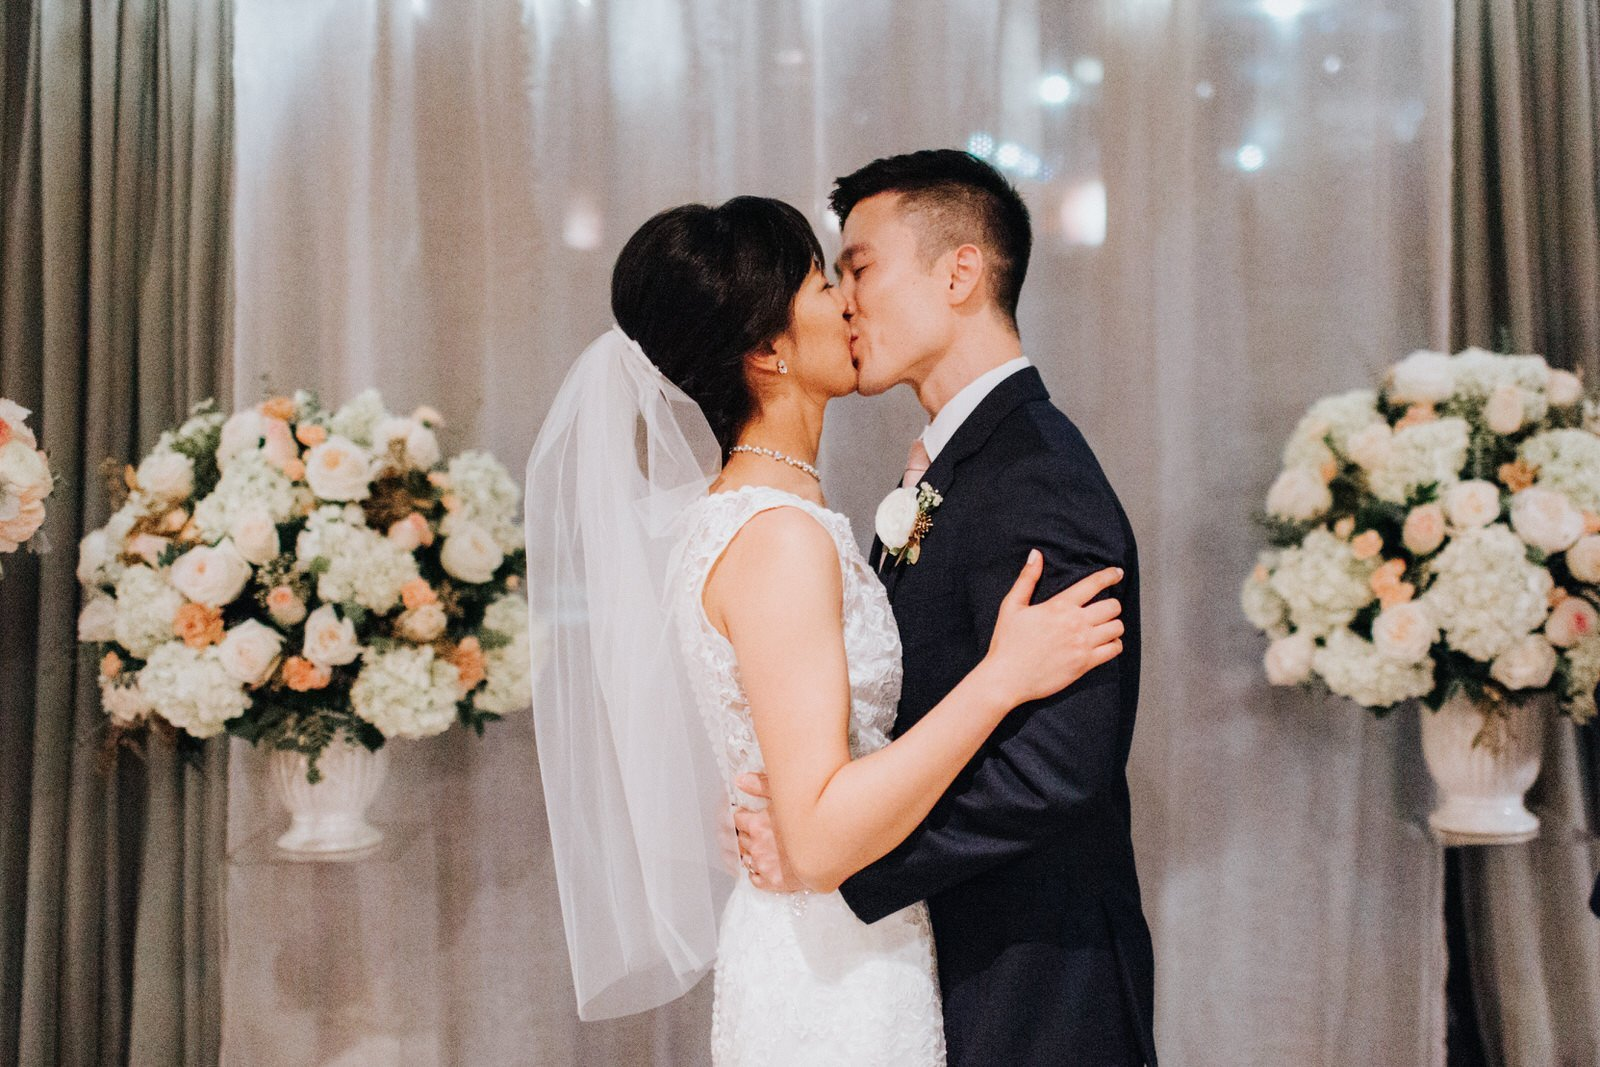 The couple kisses during their night ceremony at hotel 1000